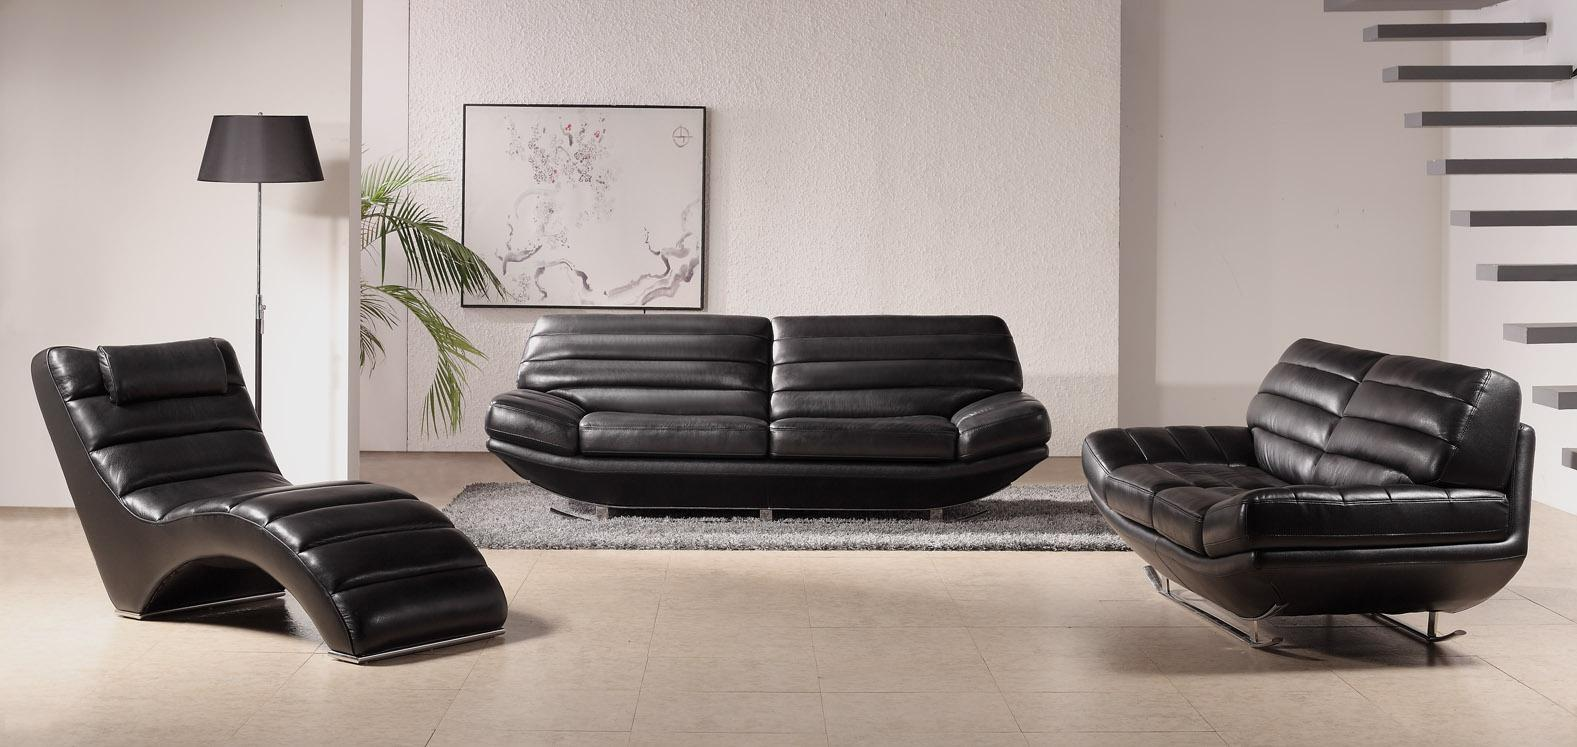 Know about types of couches and sofas my decorative for Living room suites furniture